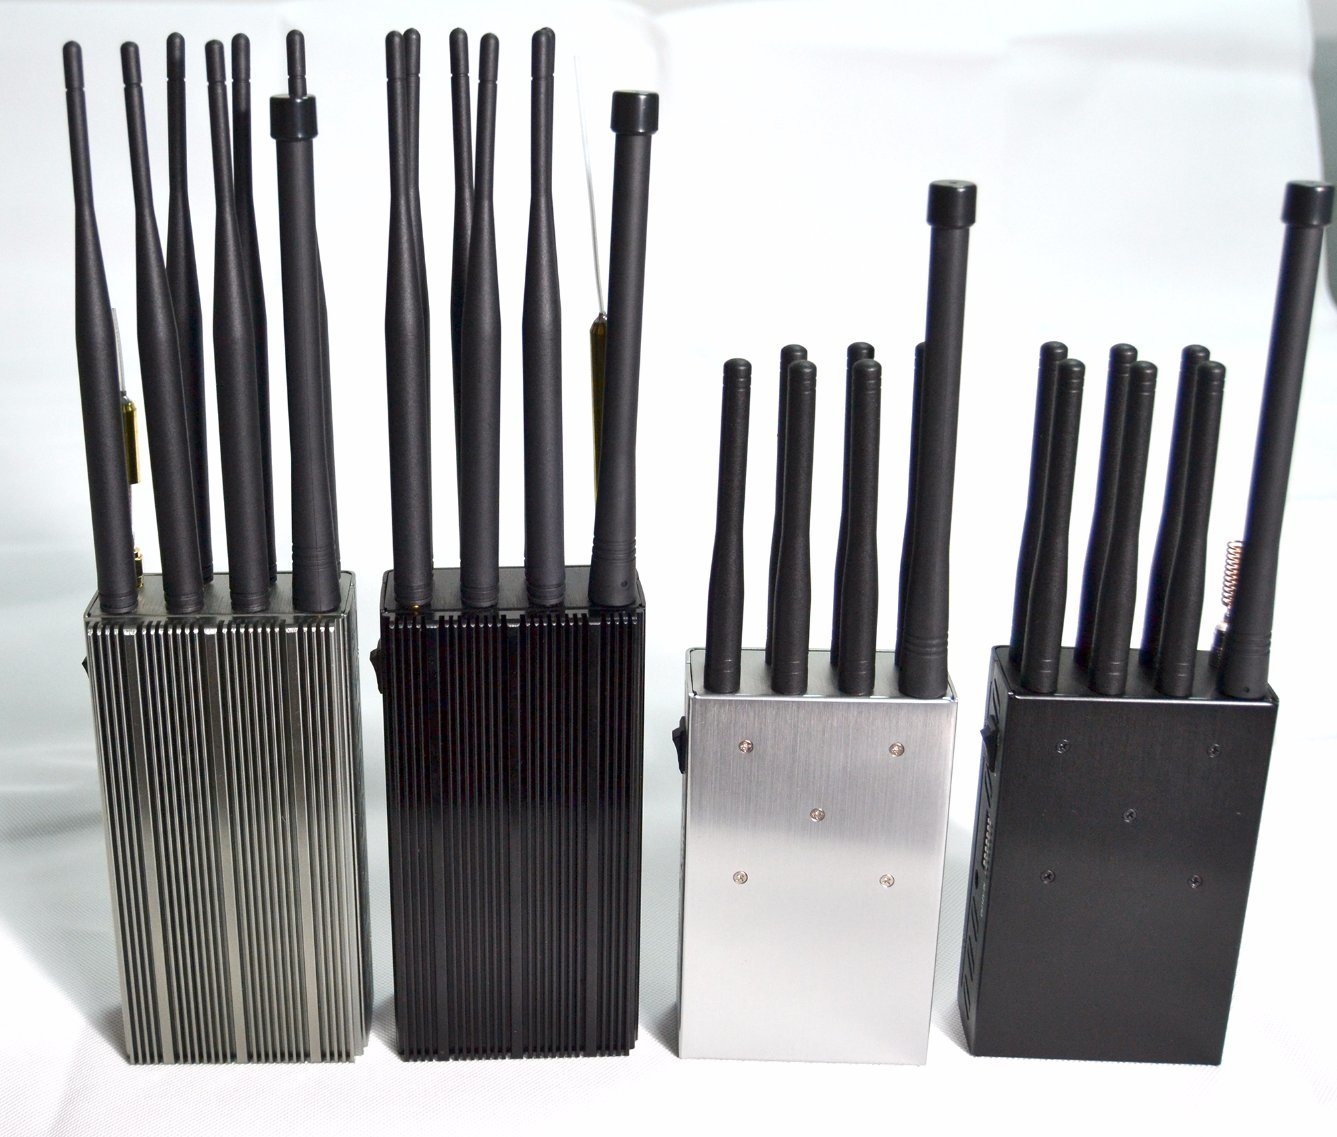 wholesale gps signal jammer manufacturer | China Hot Selling 8 Antenna Cell Phone + GPS Signal Jammer Blocker with Cooling System, Handheld Cell Phone GPS Jammer - China Cellular Signal GSM Blocker, Mobile Phone Jammer